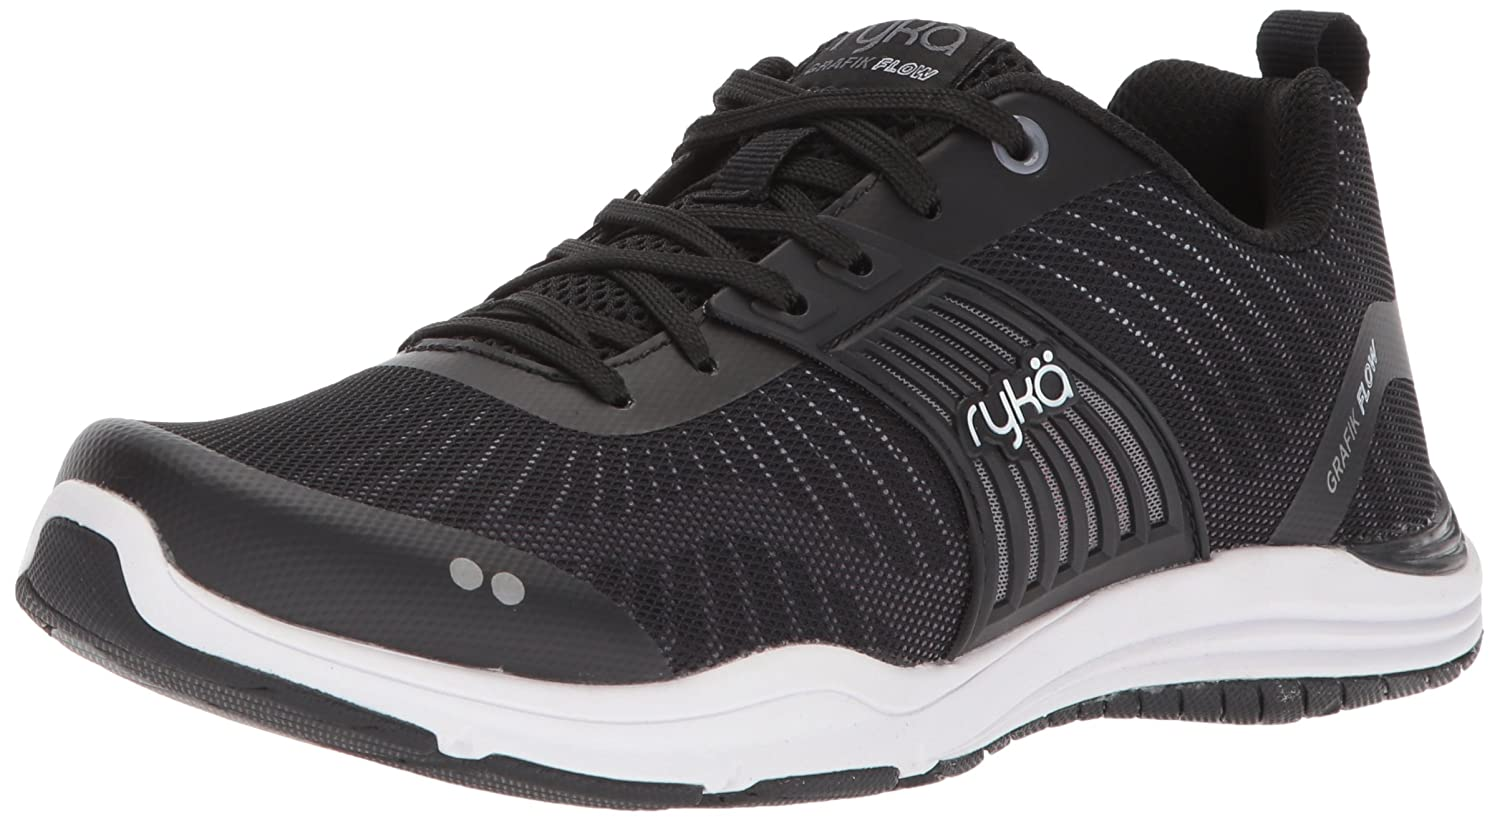 Ryka Women's Grafik Flow Cross Trainer B0757P5WRQ 11 B(M) US|Black/Hyper Pink/Meteorite